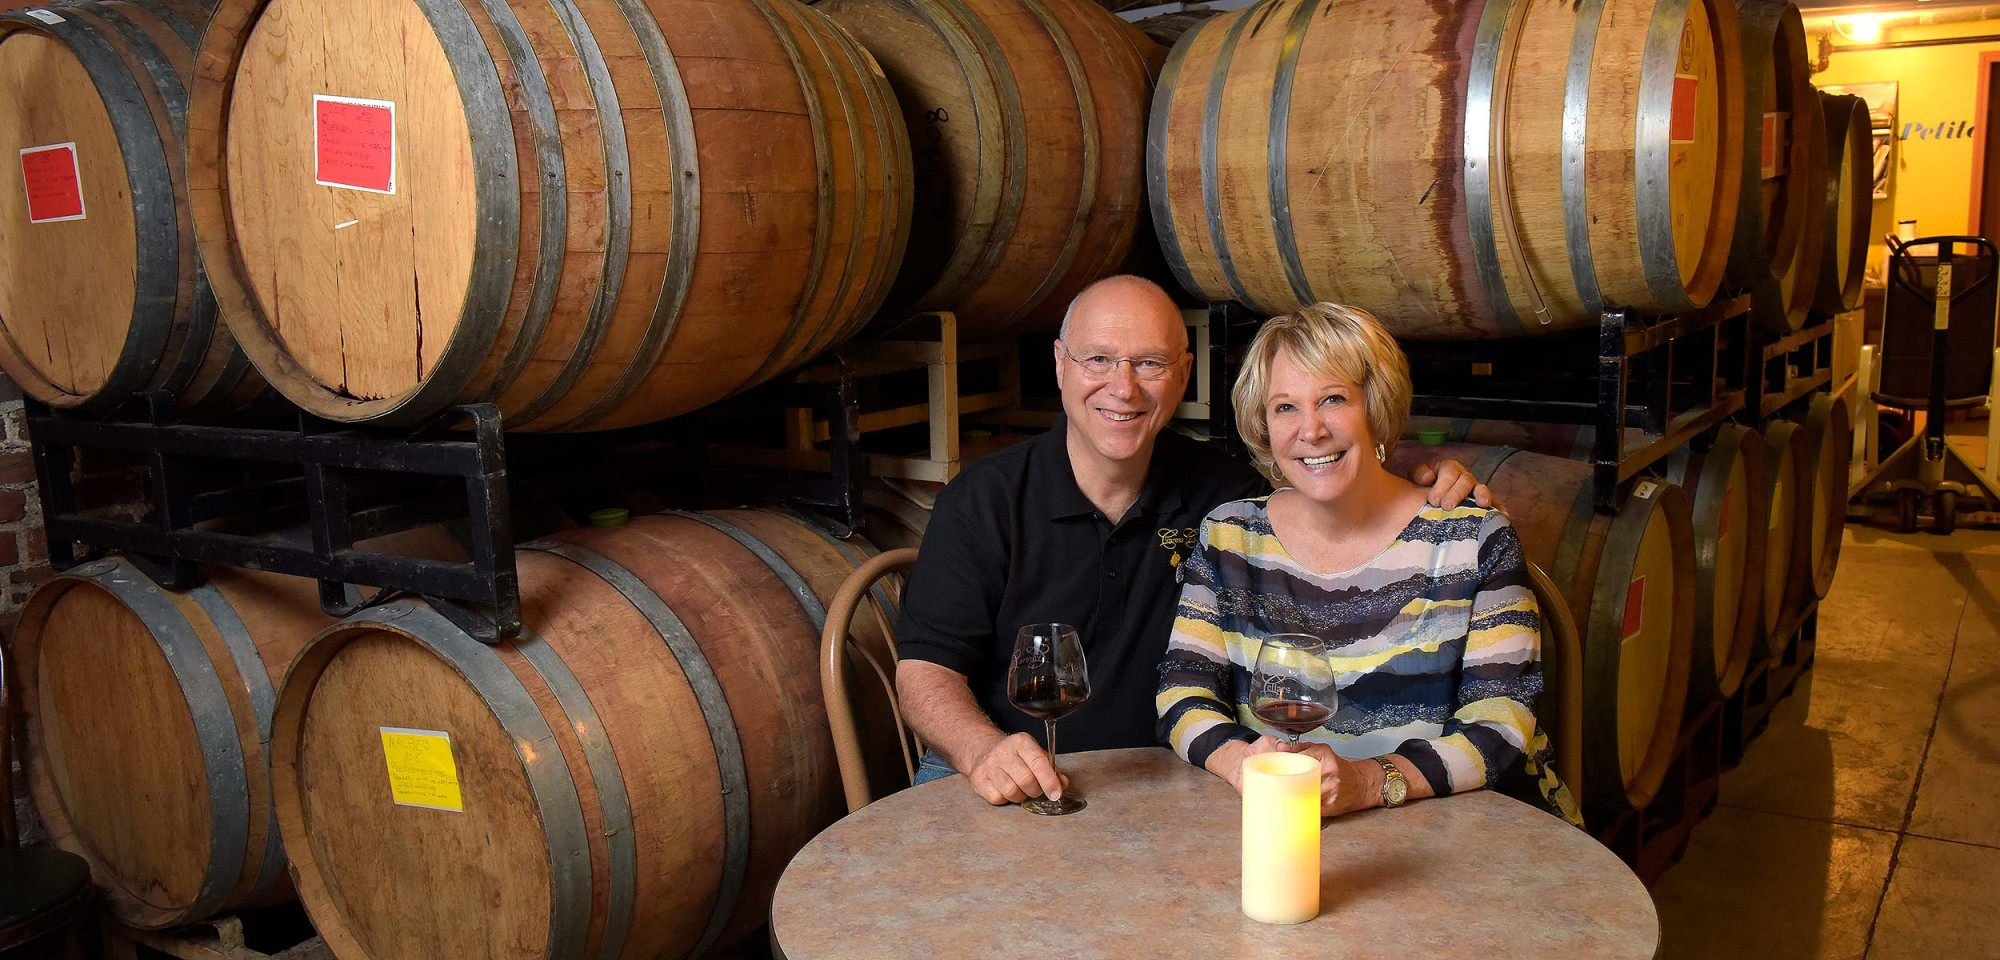 Cypress Hill Winery: California Grapes with an Ohio Twist